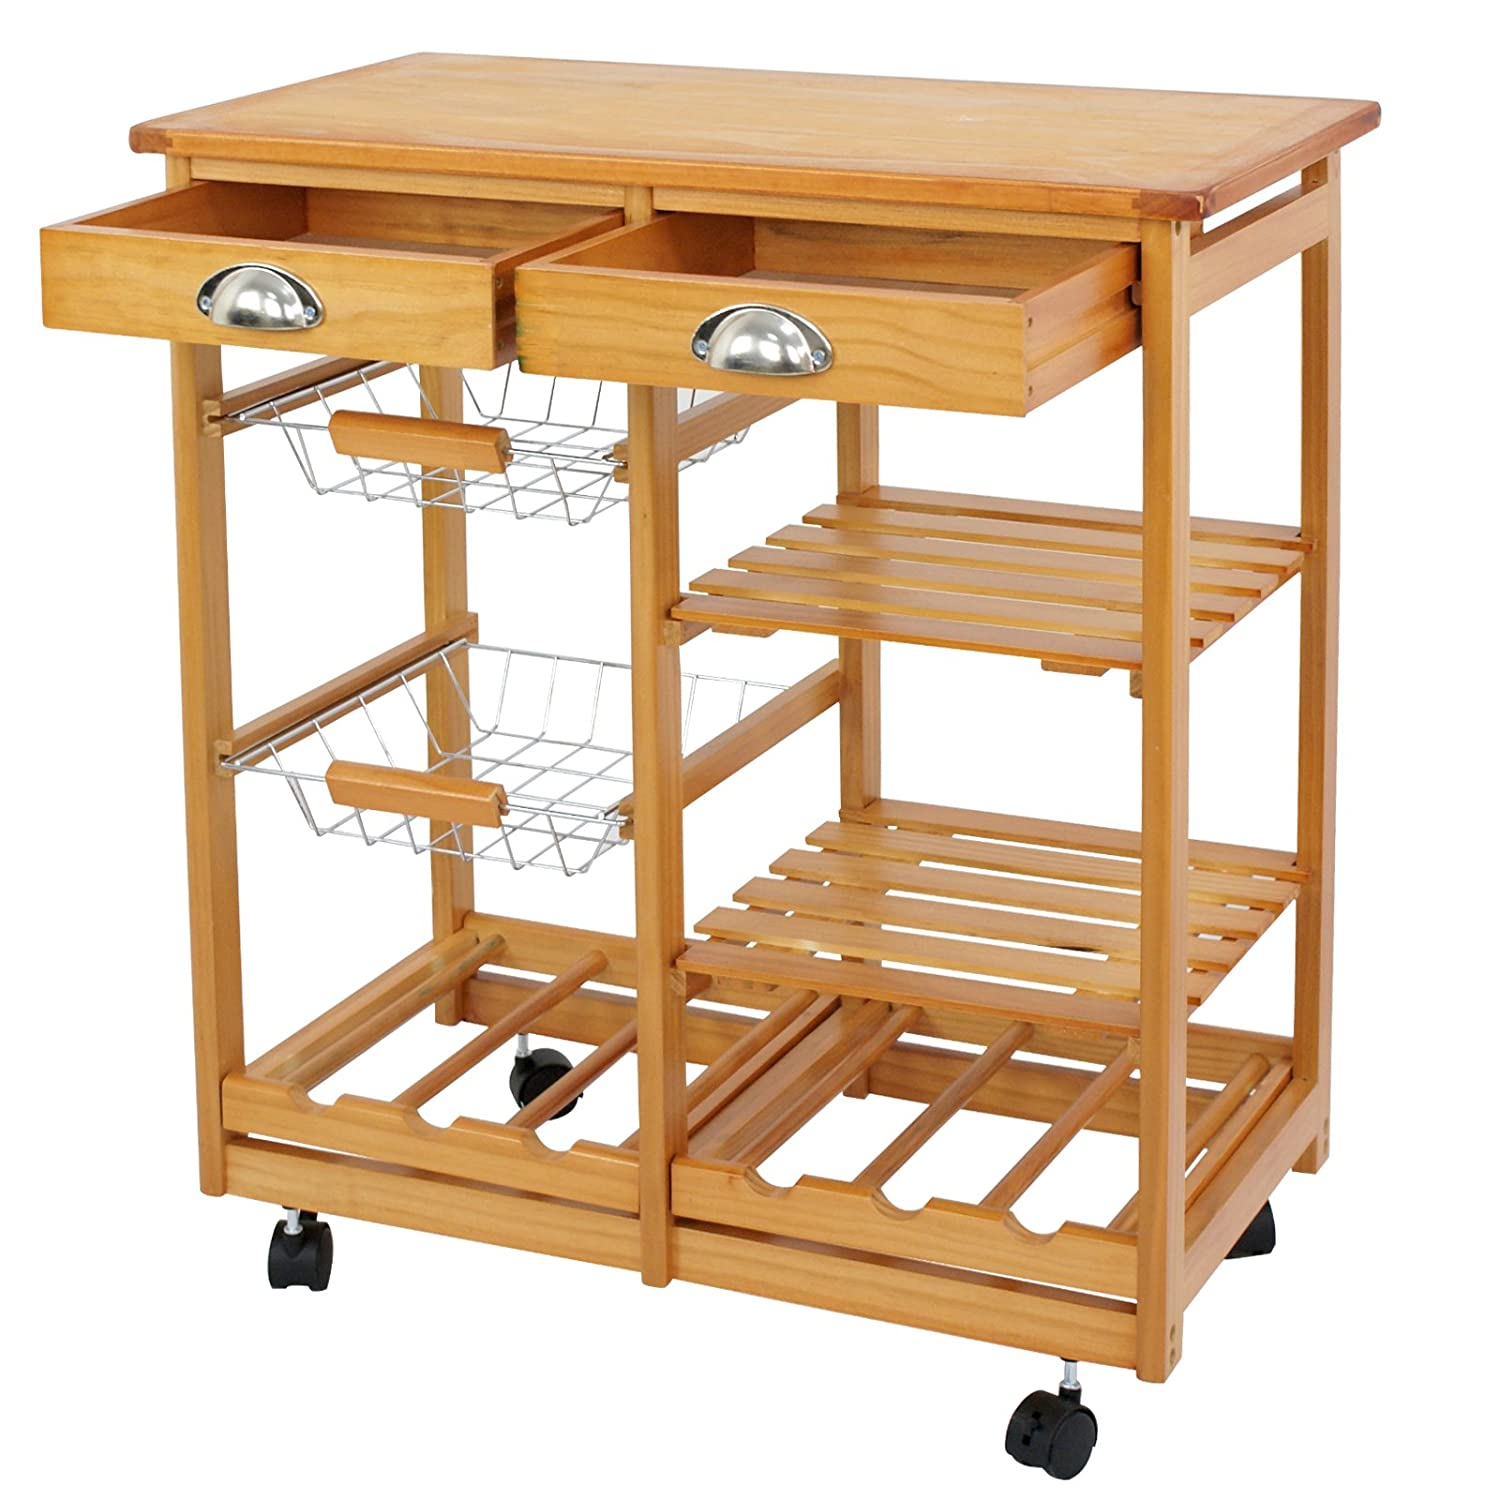 ZENY 4-Tier Rolling Kitchen Island Storage Trolley Cart Cabinet Utility, w/Towel Bar & Drawer, Rubber Wood Top Kitchen Cart